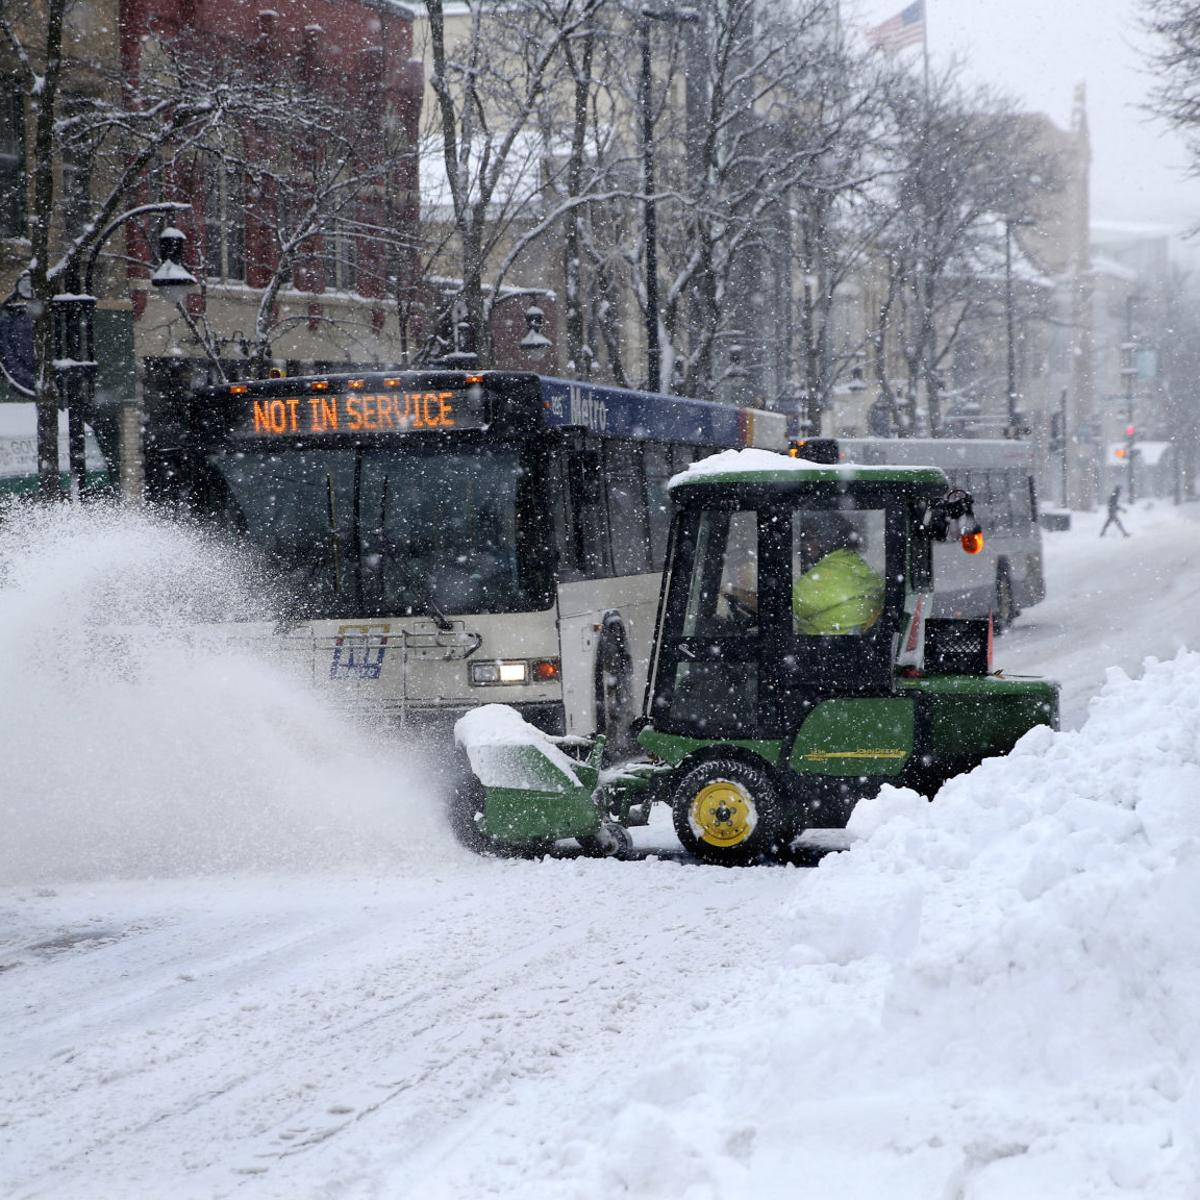 Madison Street Department Finally Gets >> Plowing Of City S Streets Could Take All Day And Night Snow